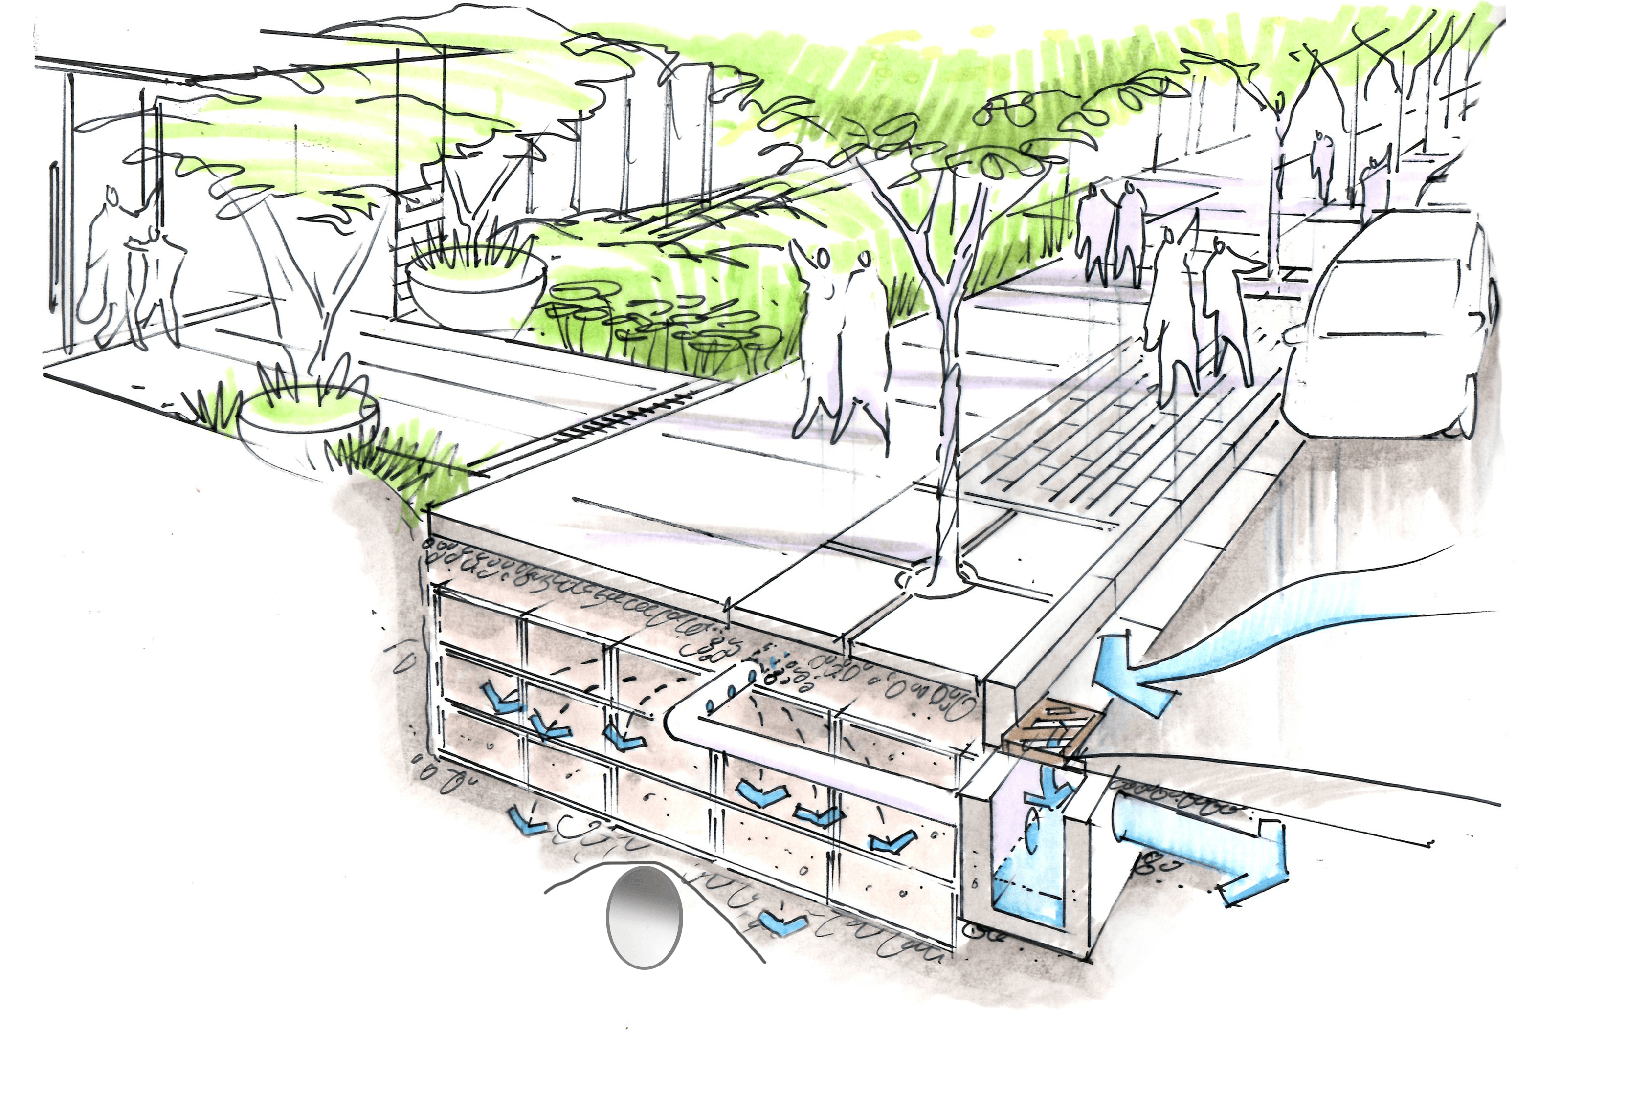 Drawing of a rainwater tree trench